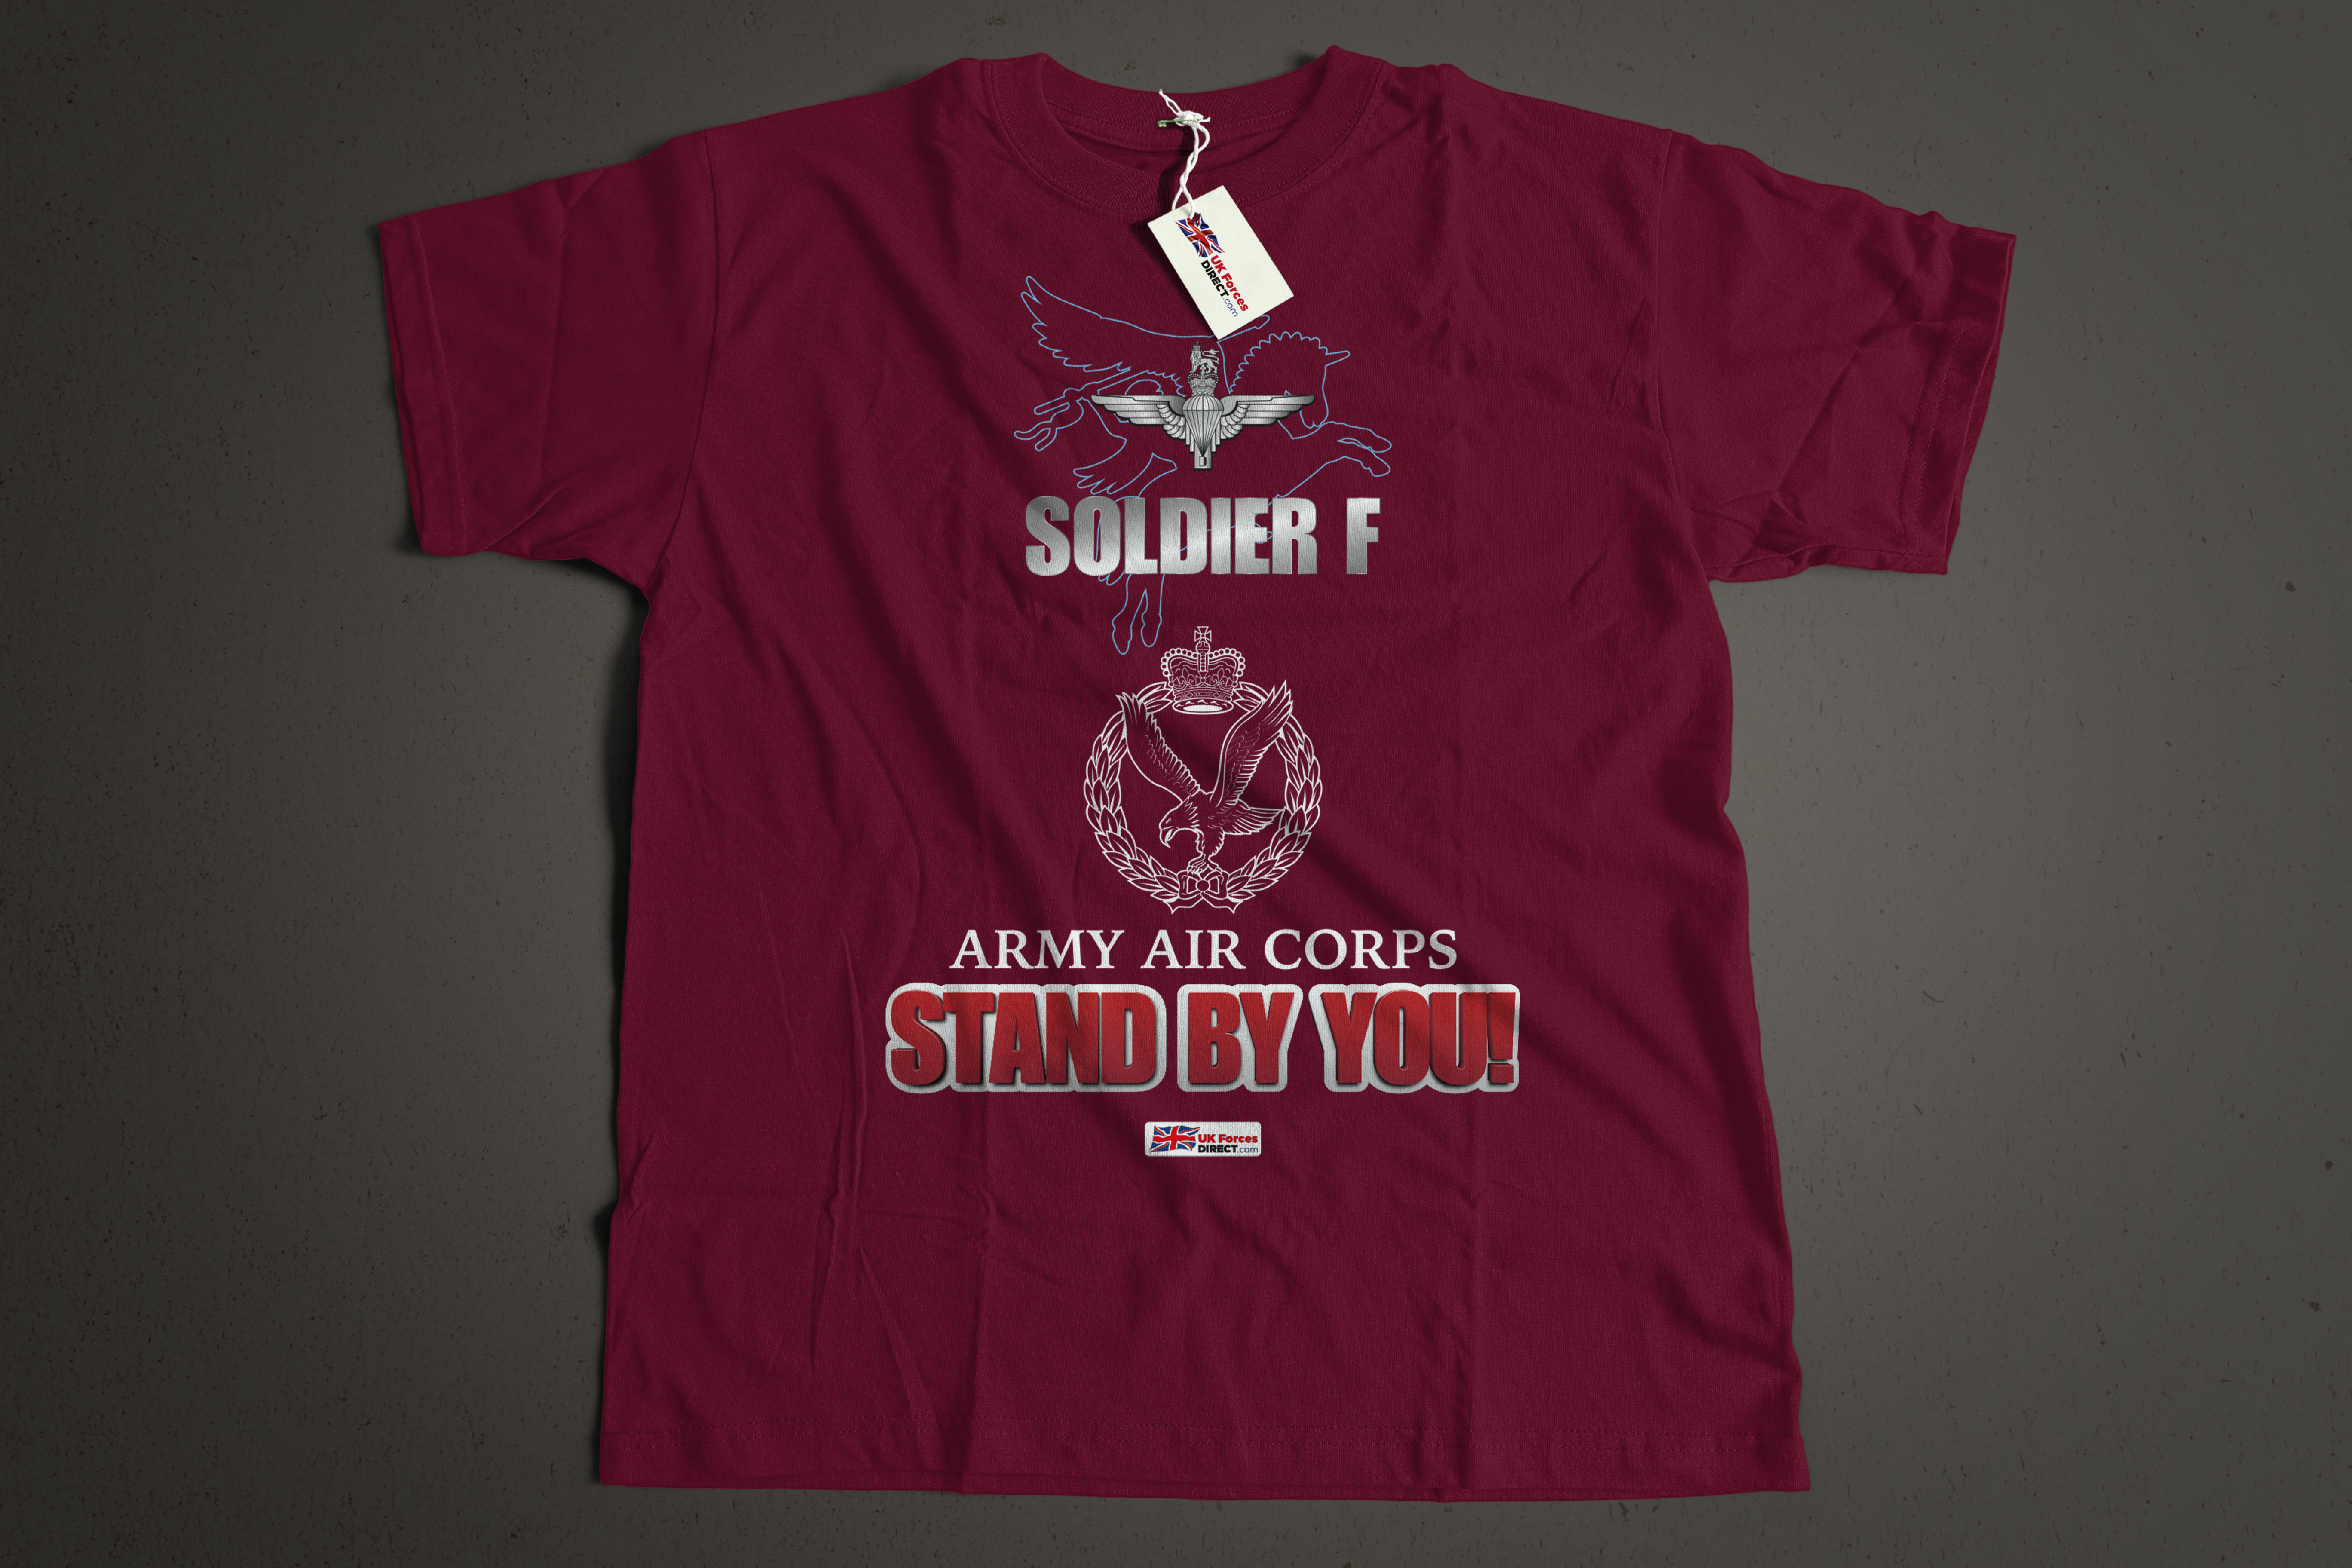 3510b334 ARMY AIR CORPS / SOLDIER F - STAND BY YOU Printed tee shirt. - UK ...